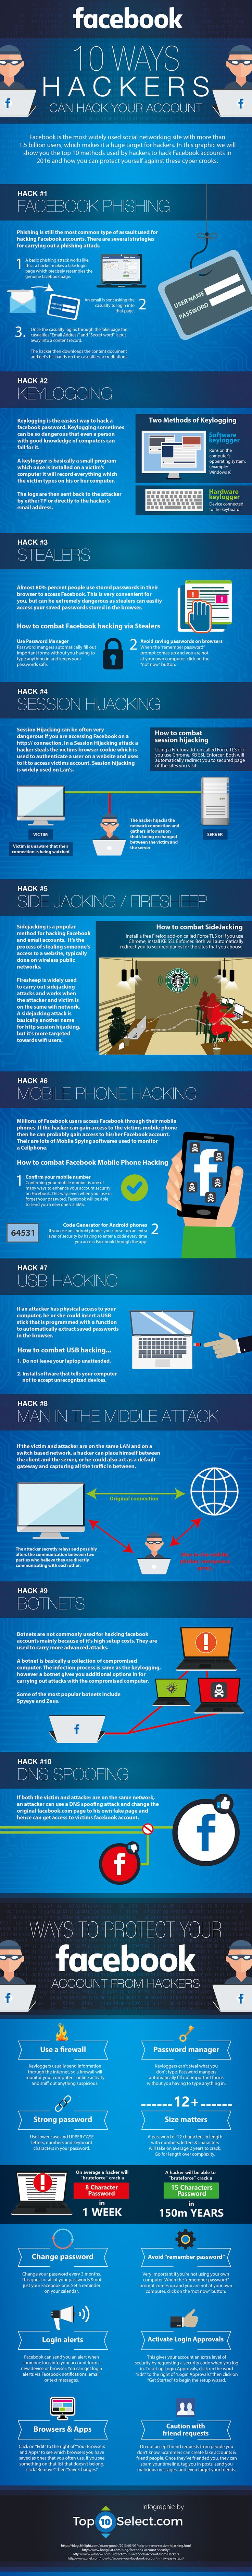 10 Ways Hackers Can Hack Your Facebook Account